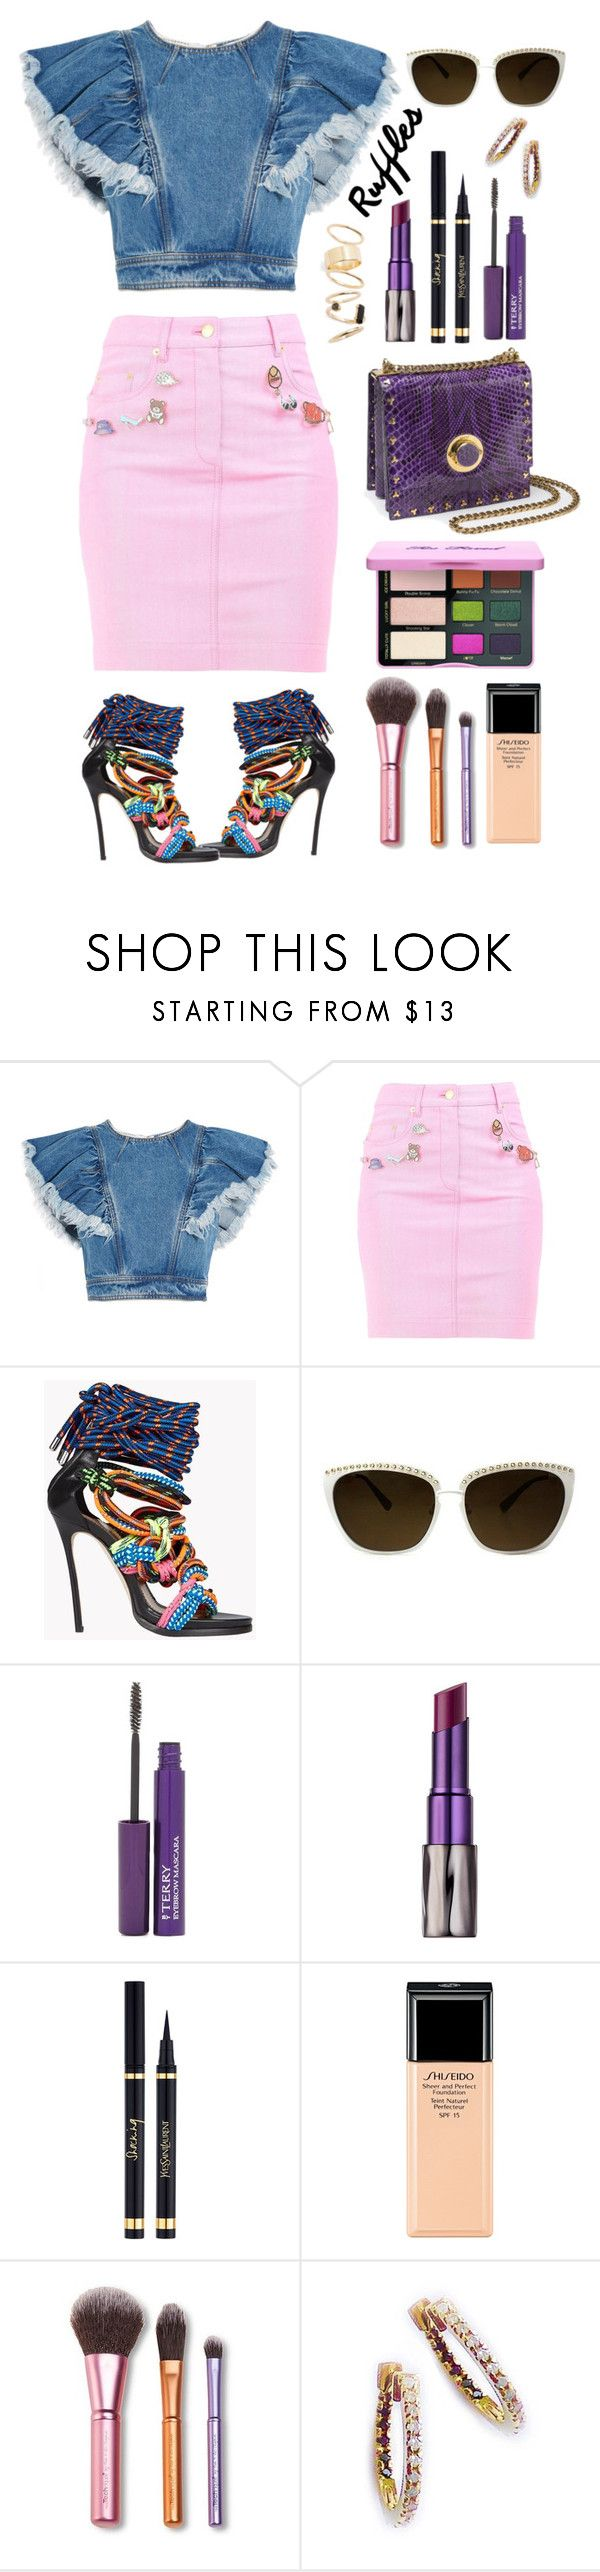 """""""92 Crazy Disco Night"""" by milva-bg ❤ liked on Polyvore featuring Philosophy di Lorenzo Serafini, Moschino, Dsquared2, Rebecca Minkoff, By Terry, Urban Decay, Shiseido and BP."""